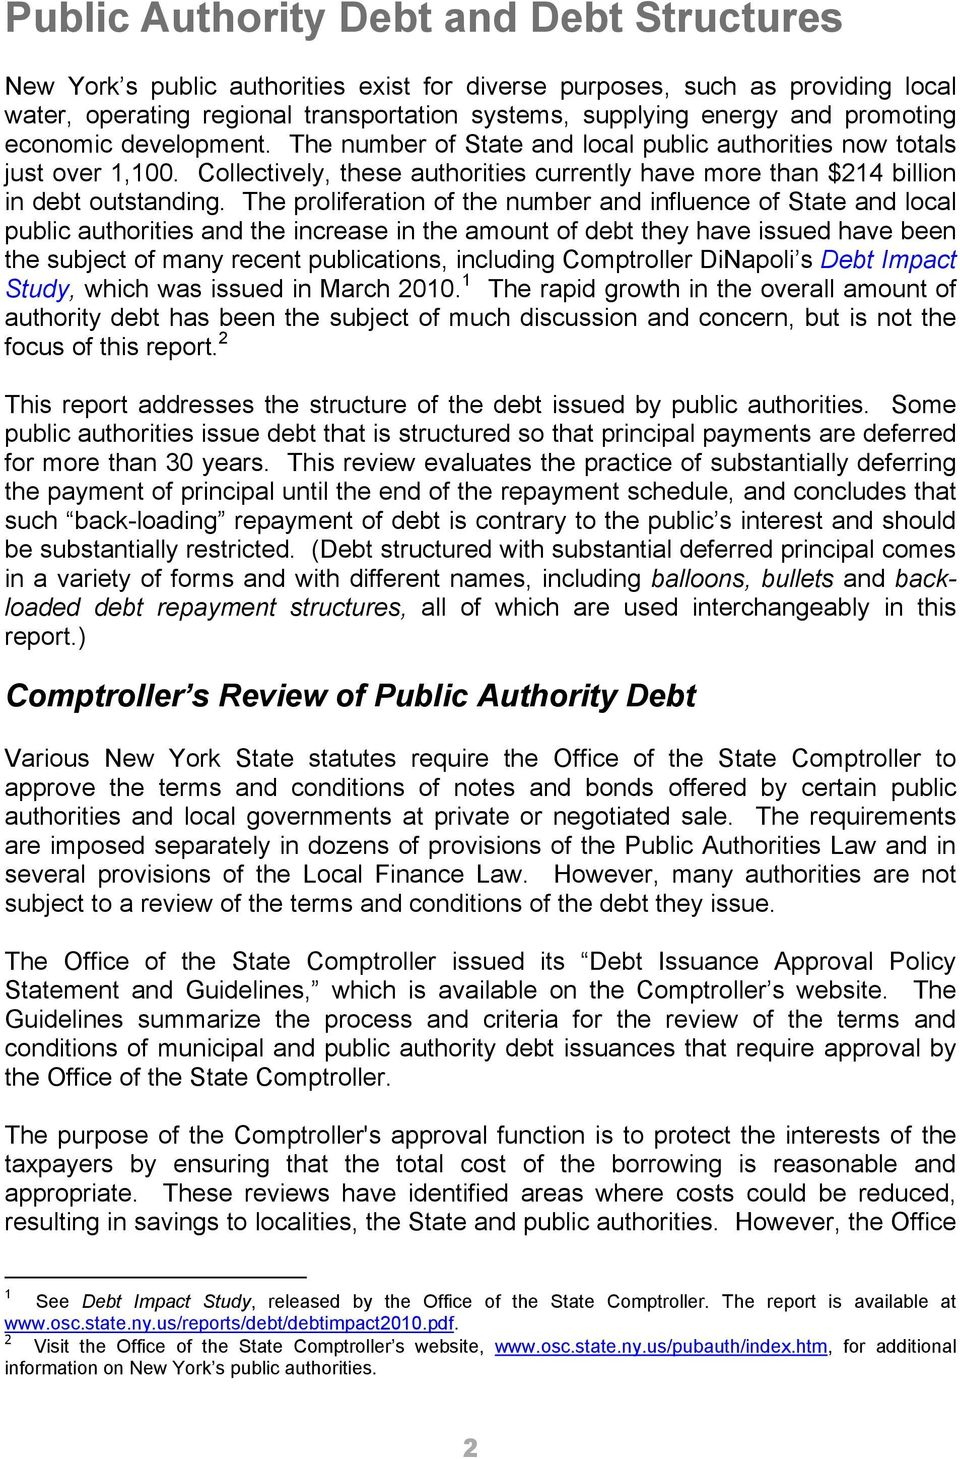 The proliferation of the number and influence of State and local public authorities and the increase in the amount of debt they have issued have been the subject of many recent publications,